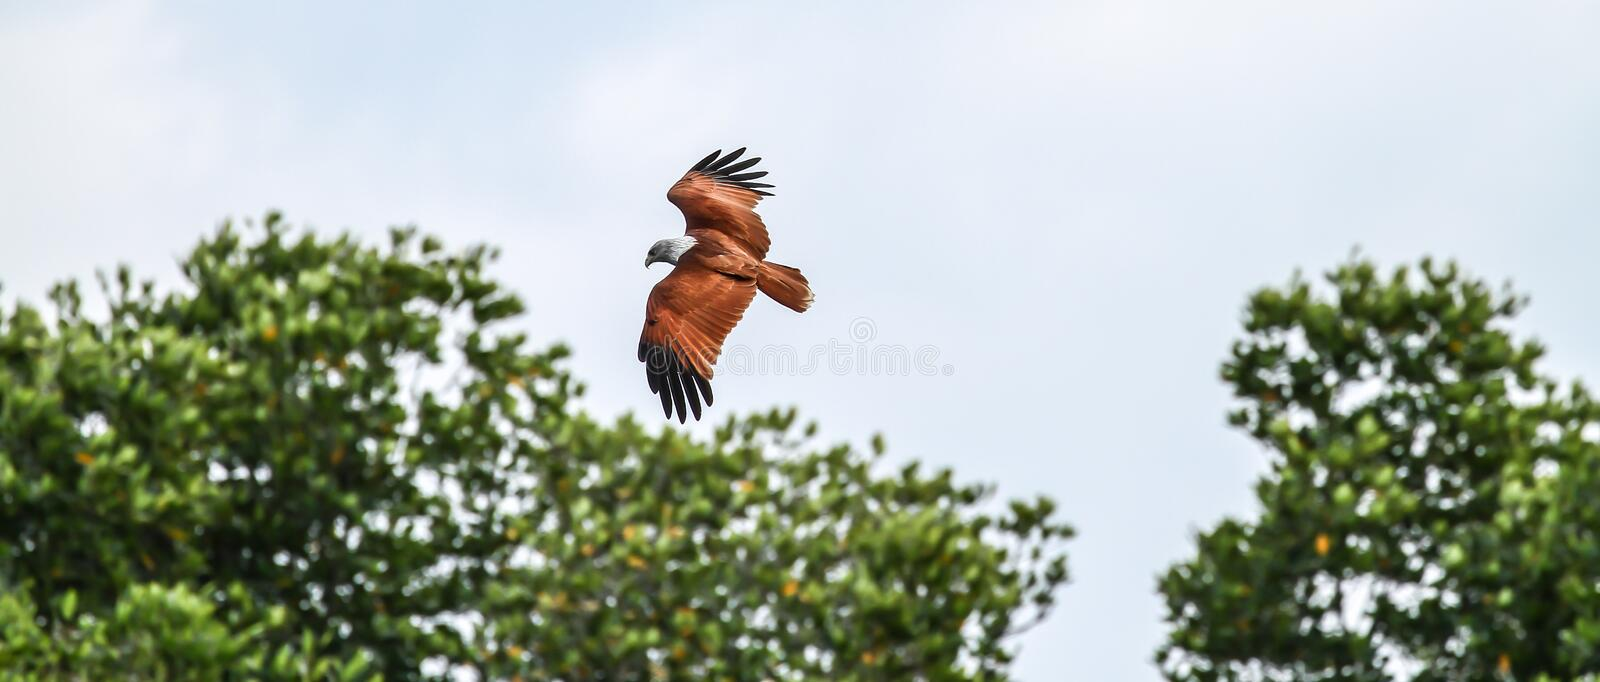 Red backed sea-eagle royalty free stock photo